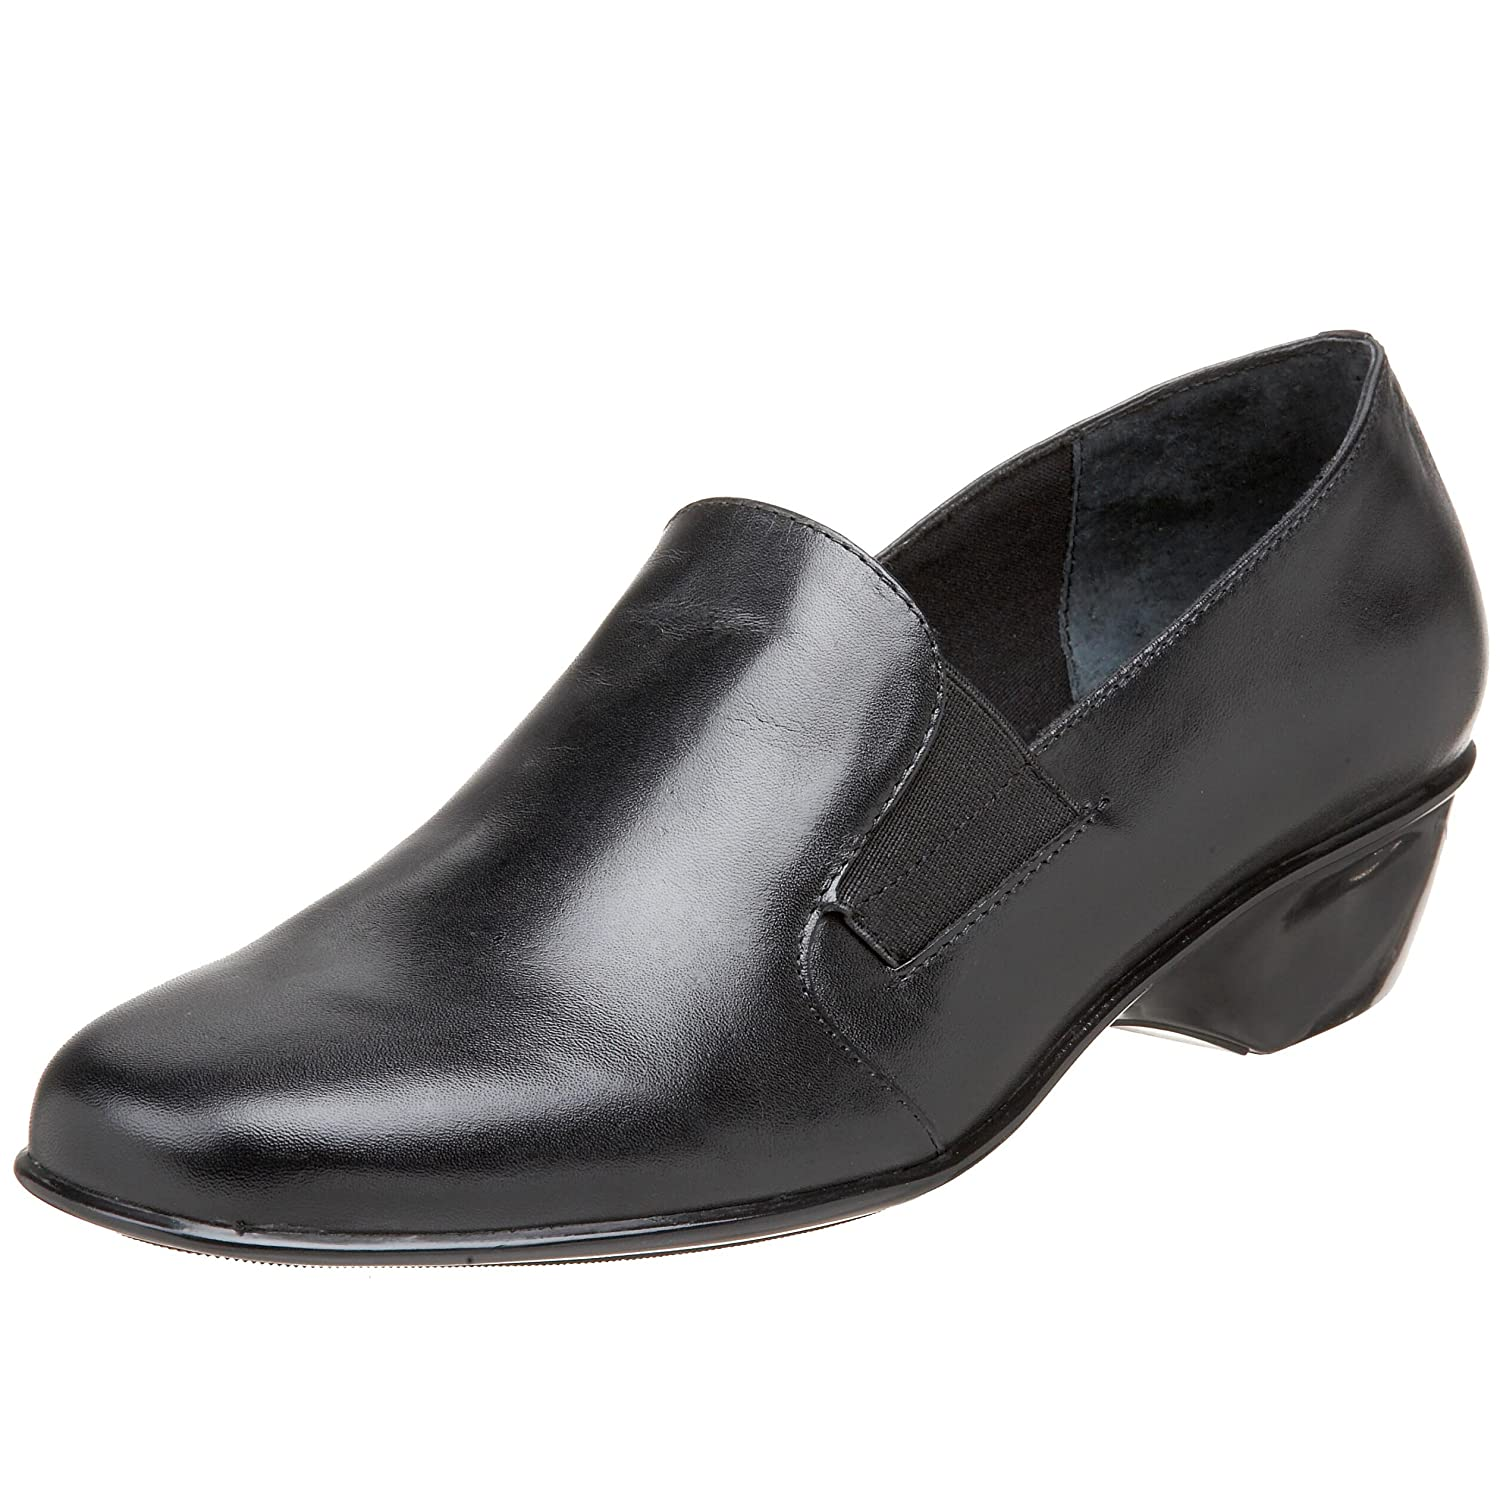 Walking Cradles Women's Teri Flat B002KAODVK 6.5 B(M) US|Black Leather